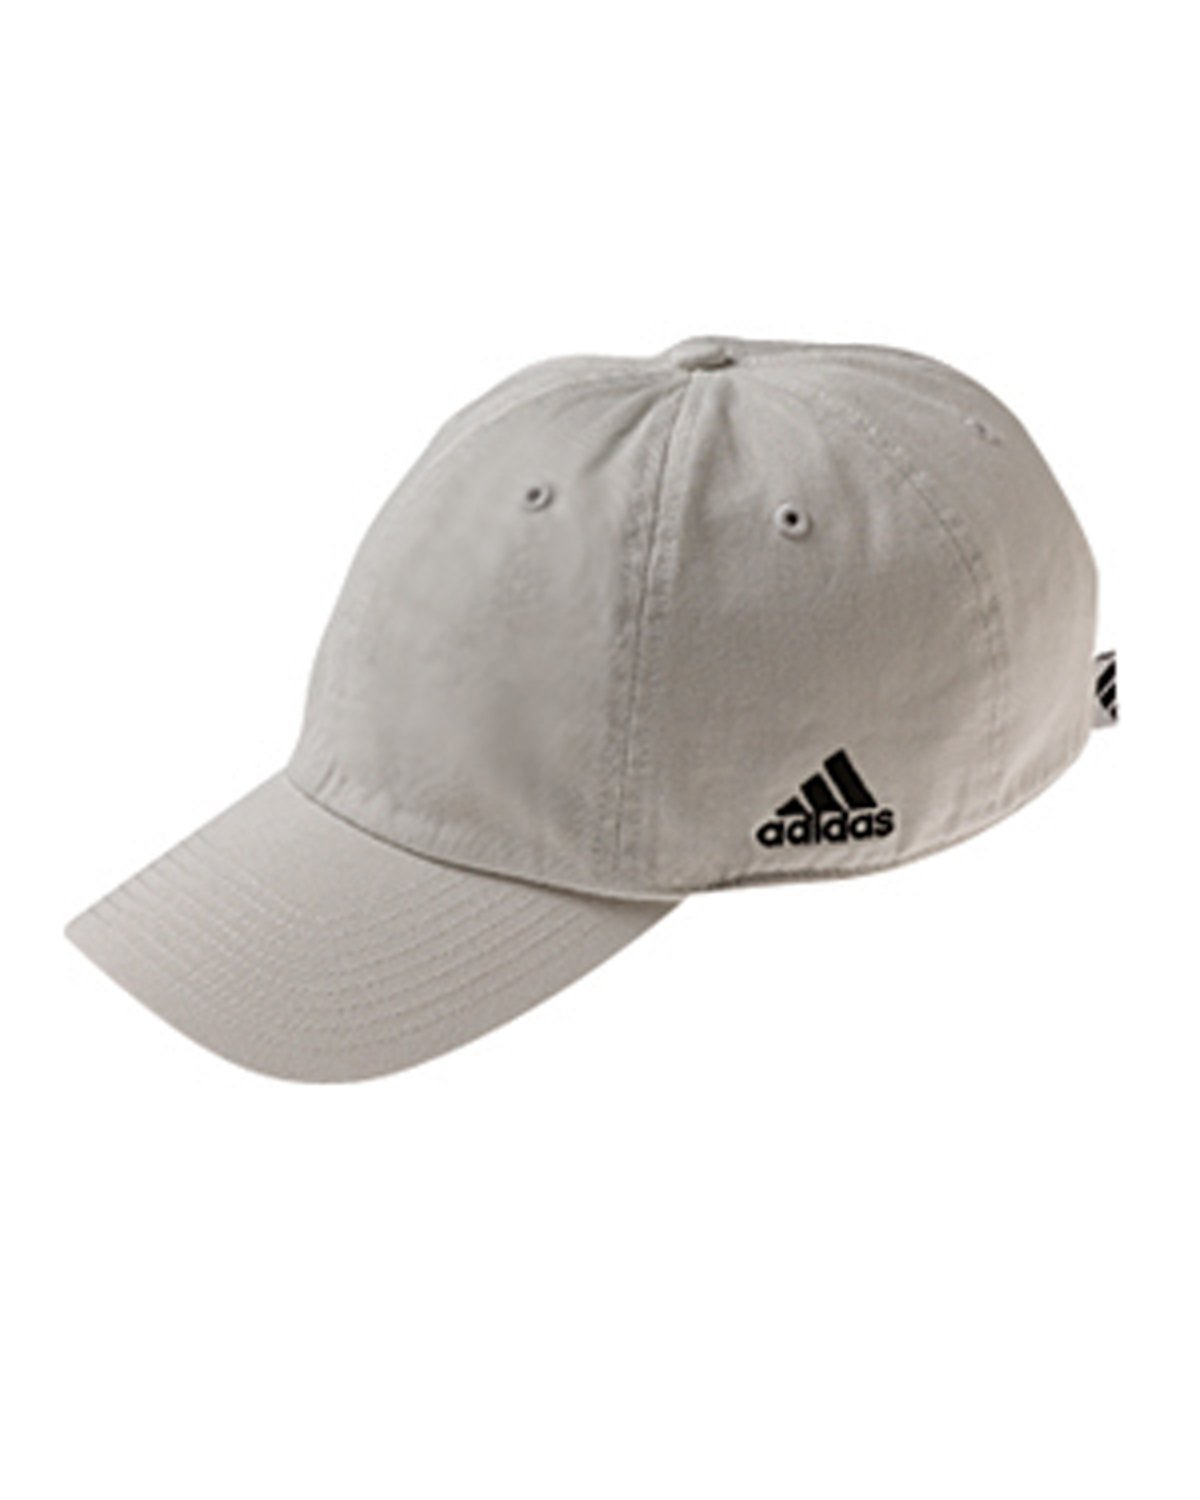 2a3fe101676 Adidas Golf A12 Relaxed Cresting Cap - Stone - One Size